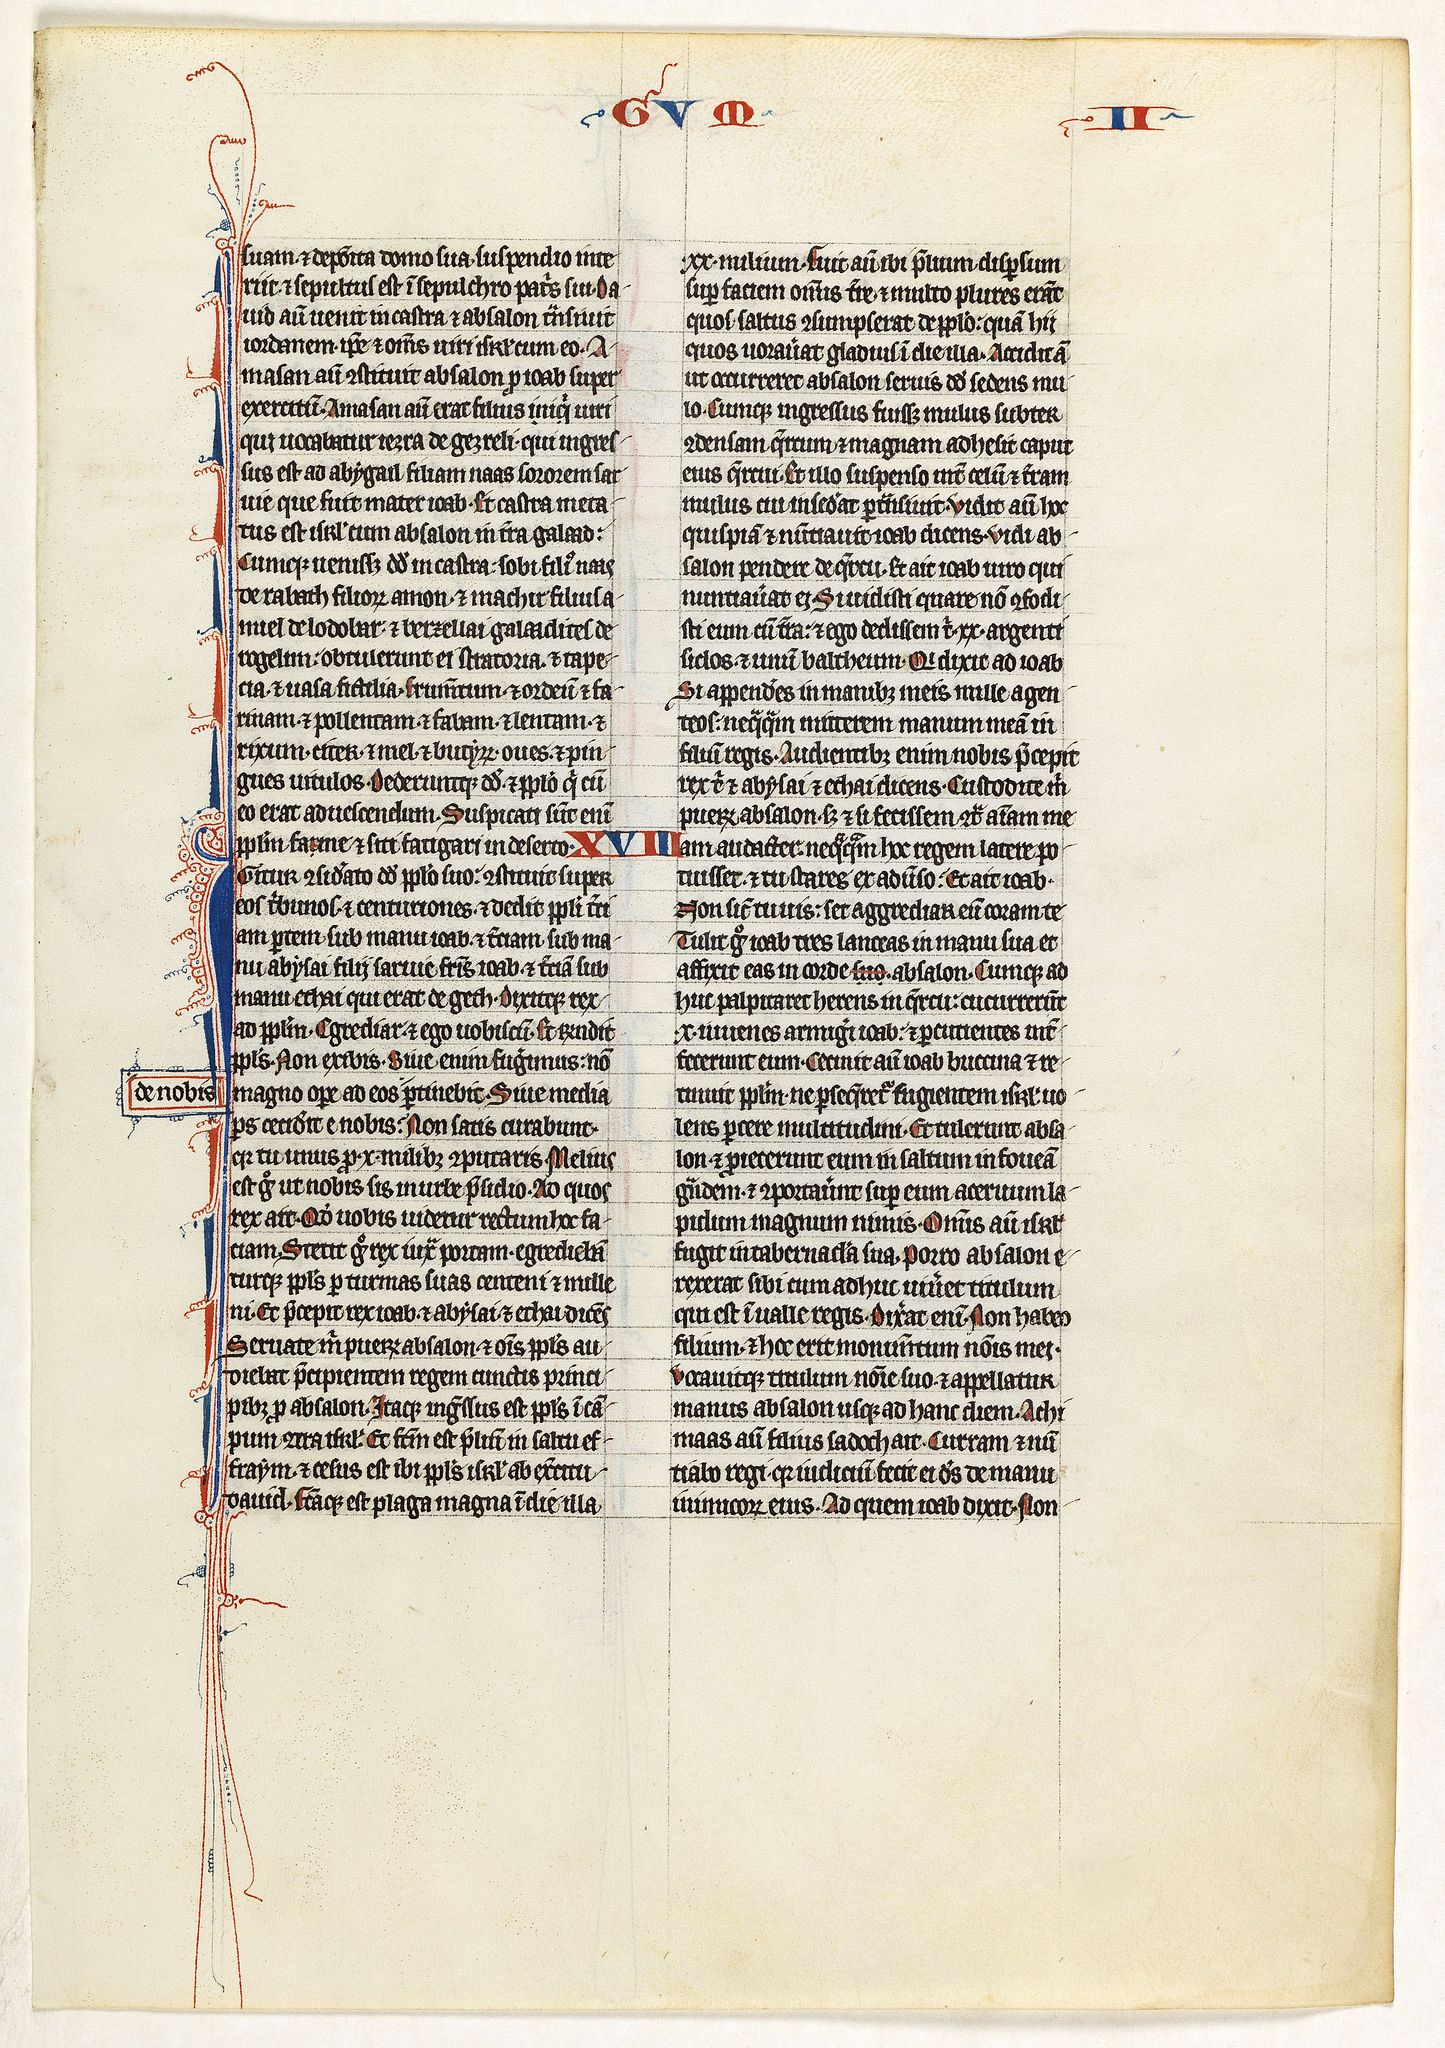 BIBLE,  Leaf on vellum from a 13th century manuscript Bible, antique map, old maps